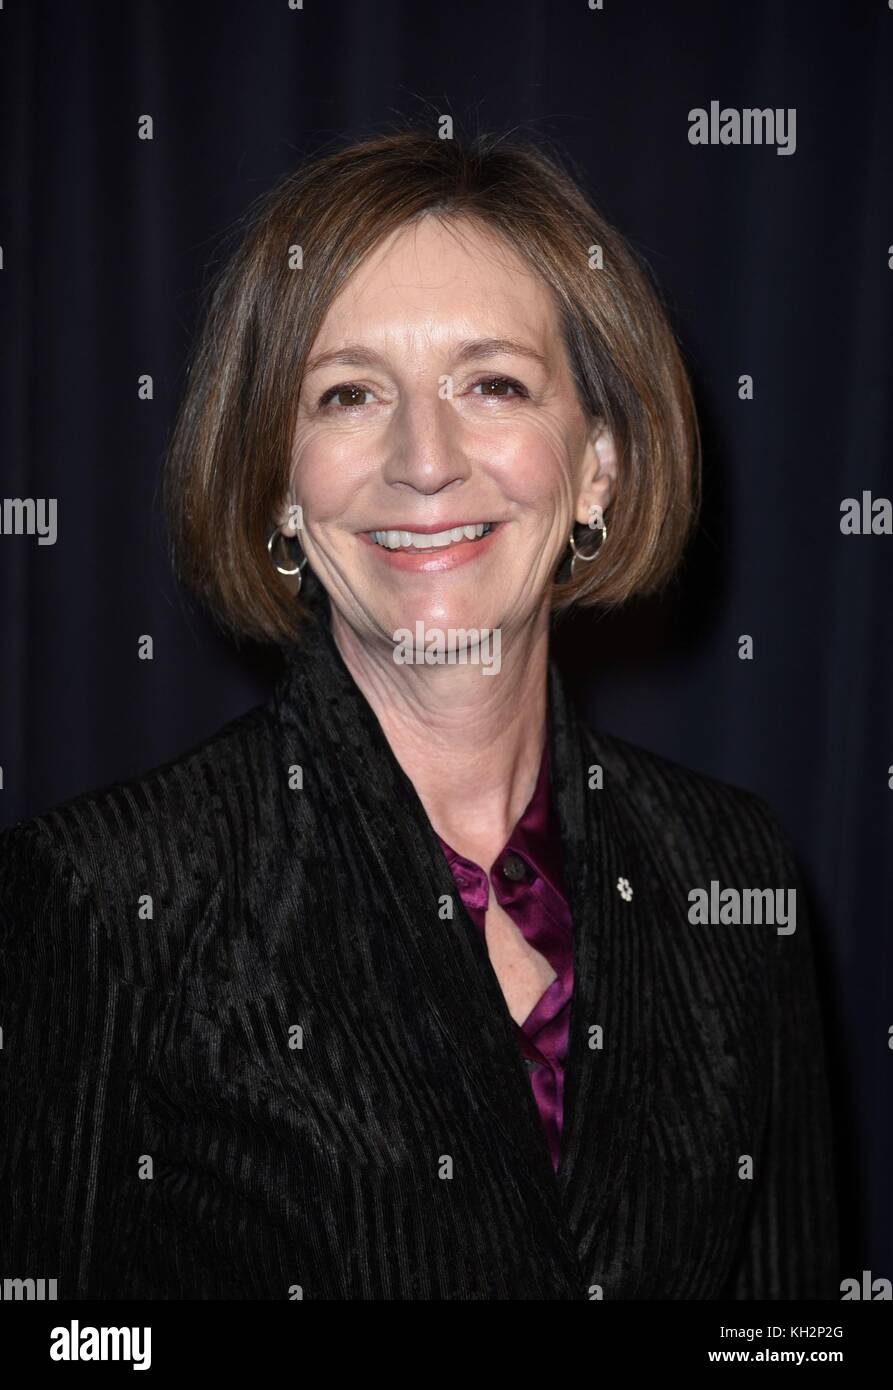 New York, NY, USA. 12th Nov, 2017. Susan Coyne at arrivals for THE MAN WHO INVENTED CHRISTMAS Premiere, Florence - Stock Image